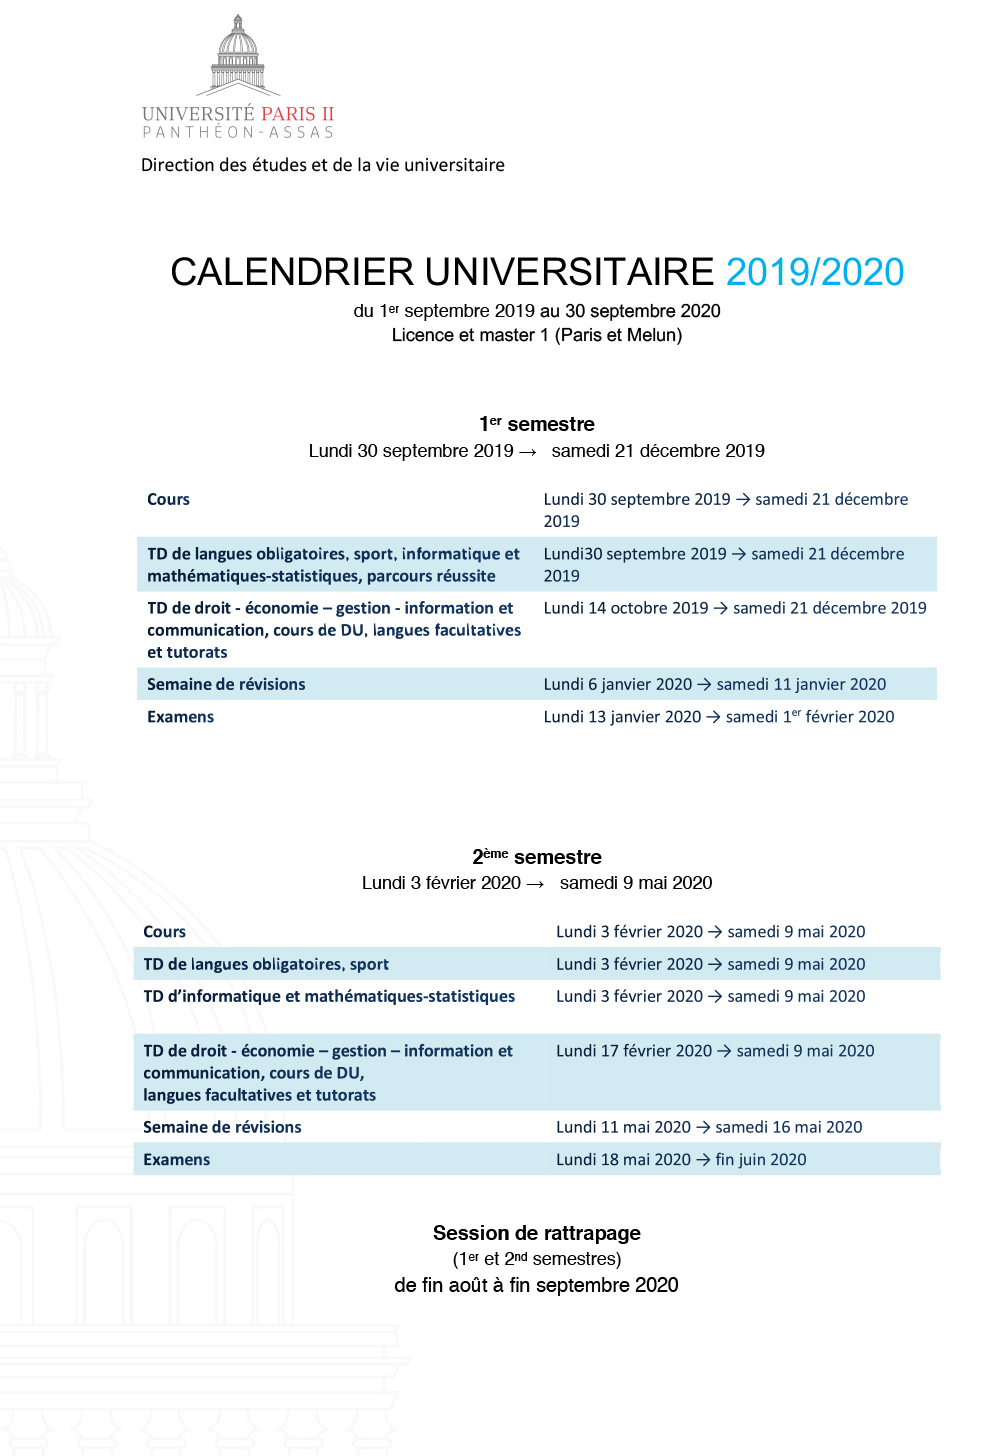 Calendrier universitaire 2019-2020 licence et master 1